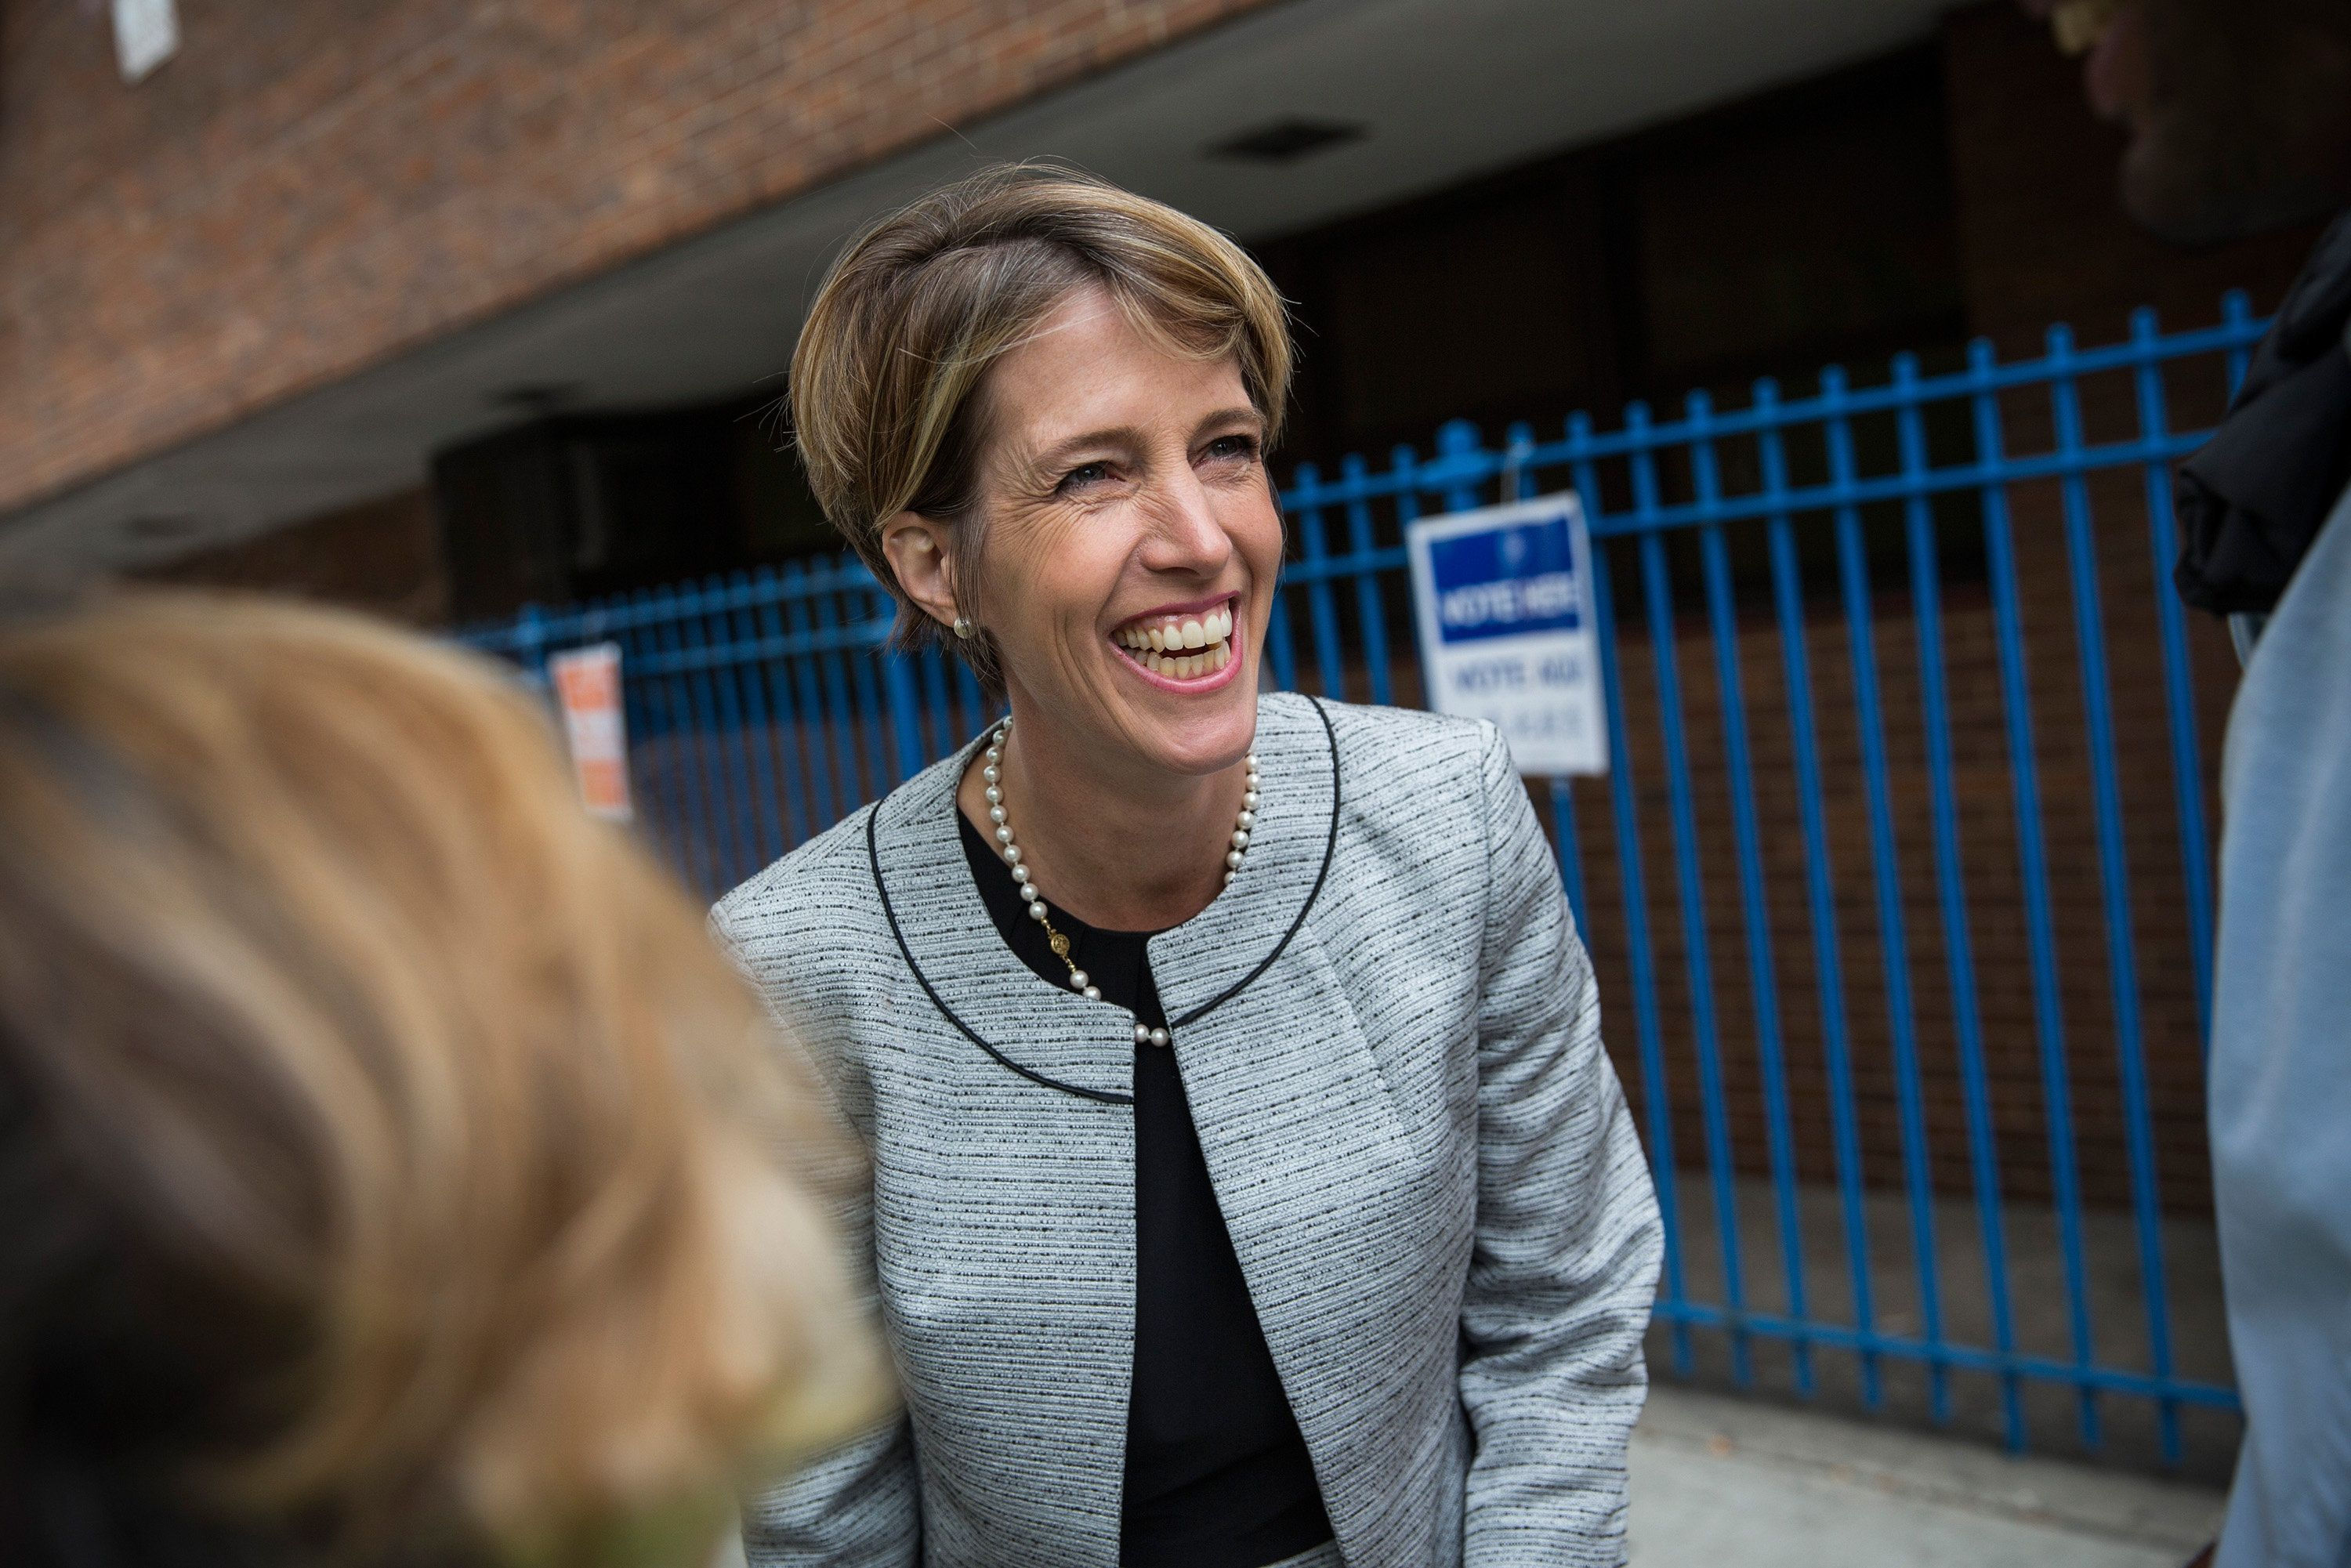 NEW YORK, NY - SEPTEMBER 09:  Zephyr Teachout, a democratic primary challenger to New York Governor Andrew Cuomo, greets voters outside a voting station at Public School 153 on September 9, 2014 in New York City. Teachout has gained unexpected traction in the primary season, campaigning on ending corruption in the state capital of Albany.  (Photo by Andrew Burton/Getty Images)